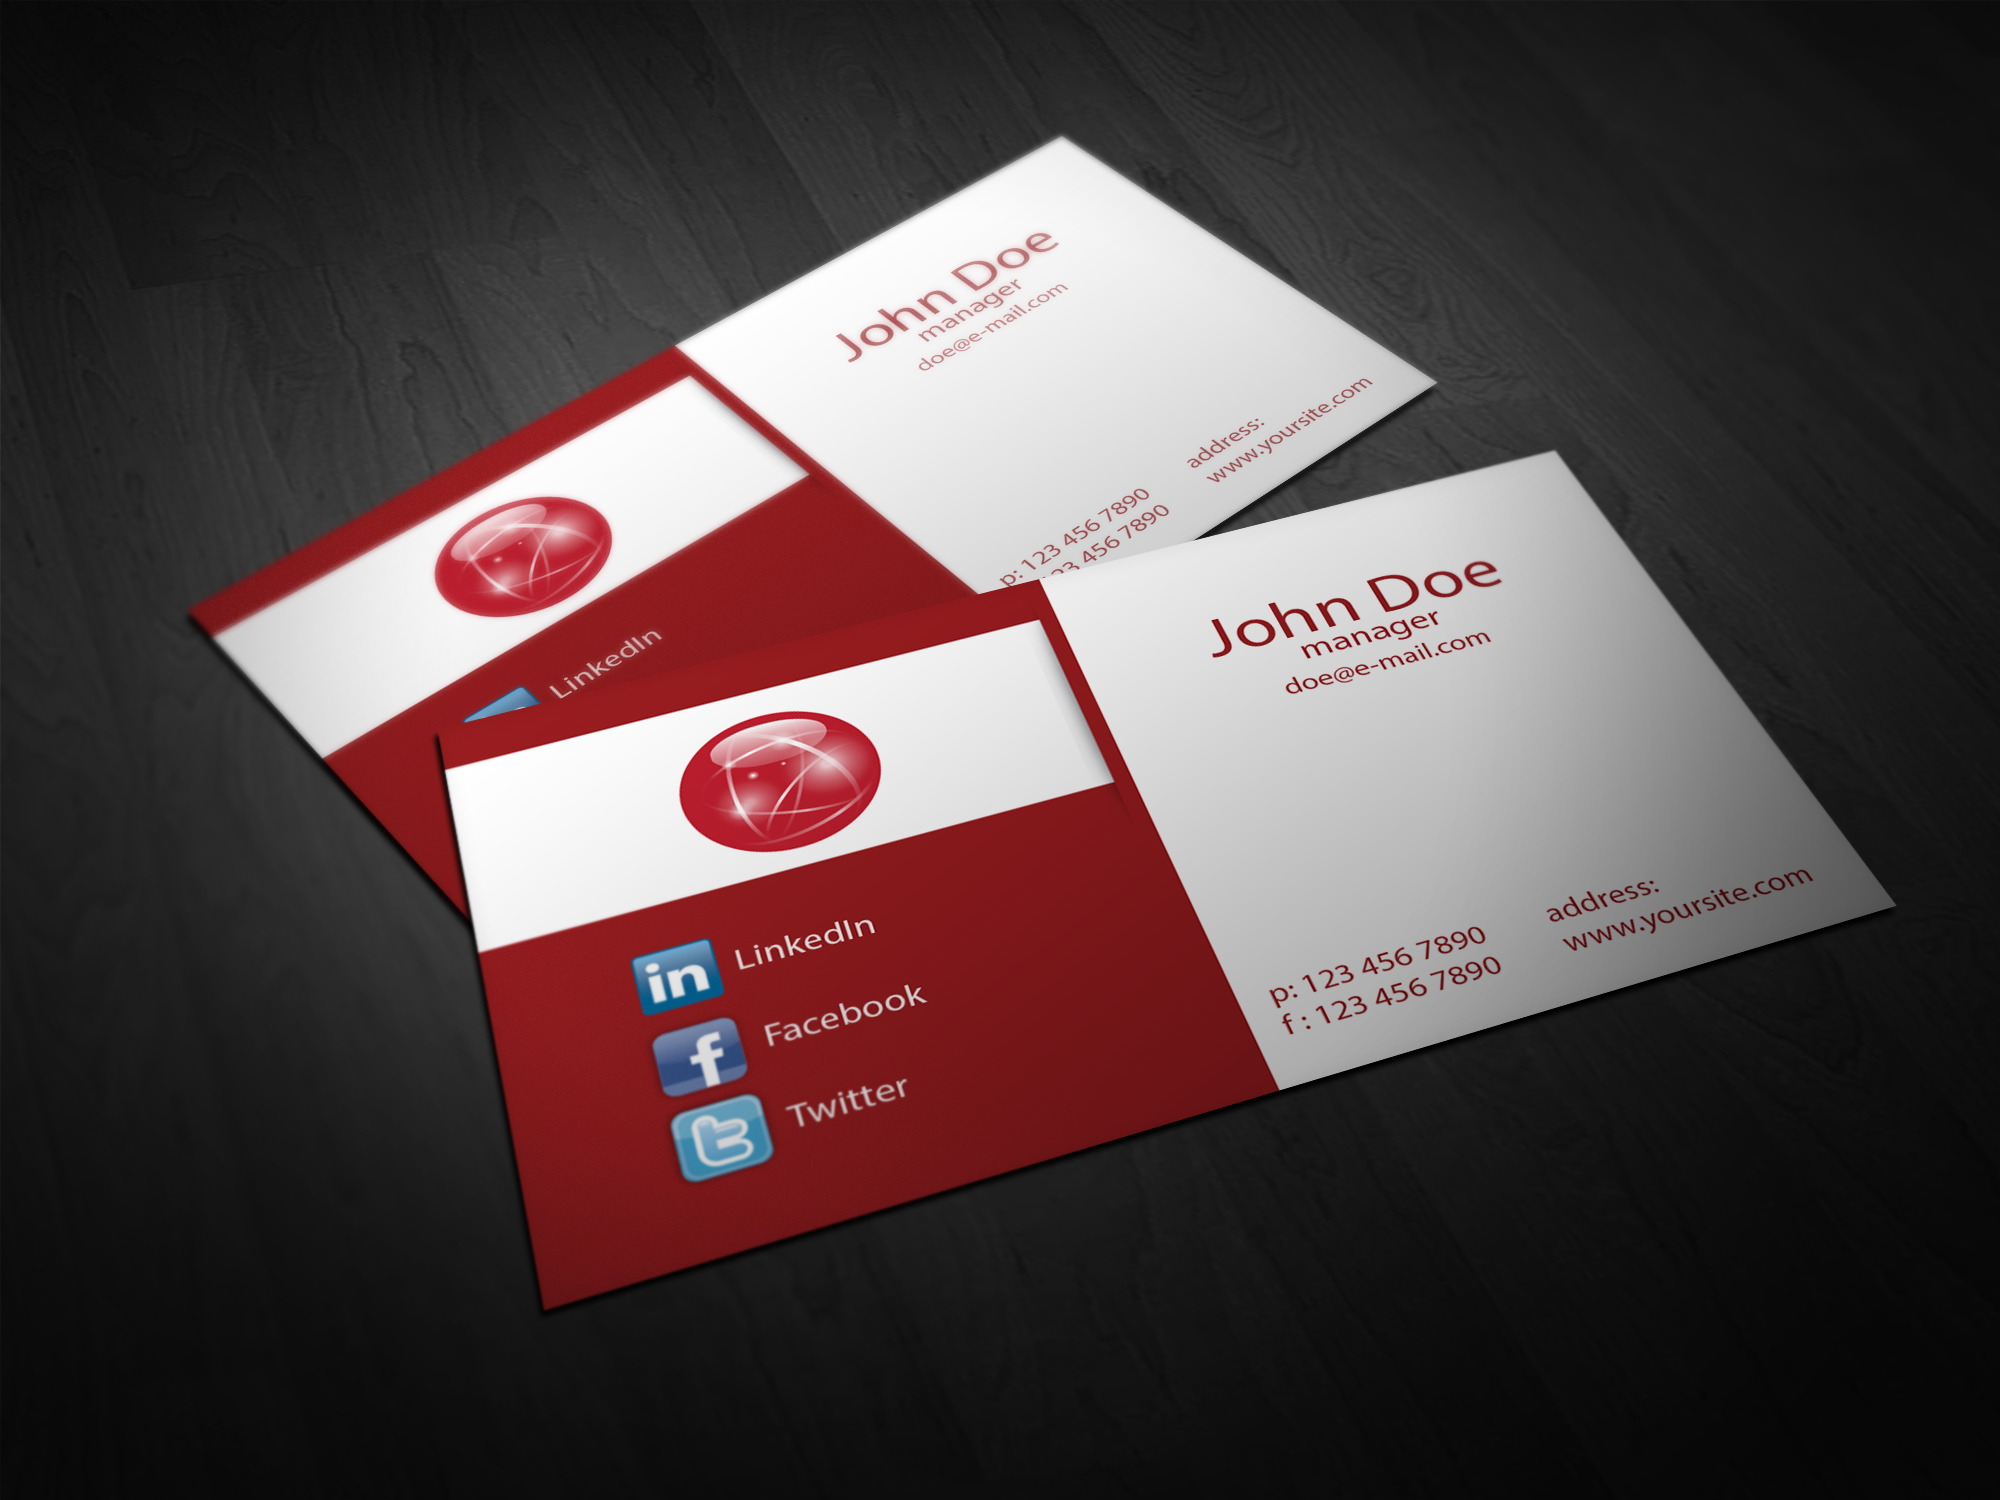 Fitness Instructor Free Business Card Template by Borce Markoski